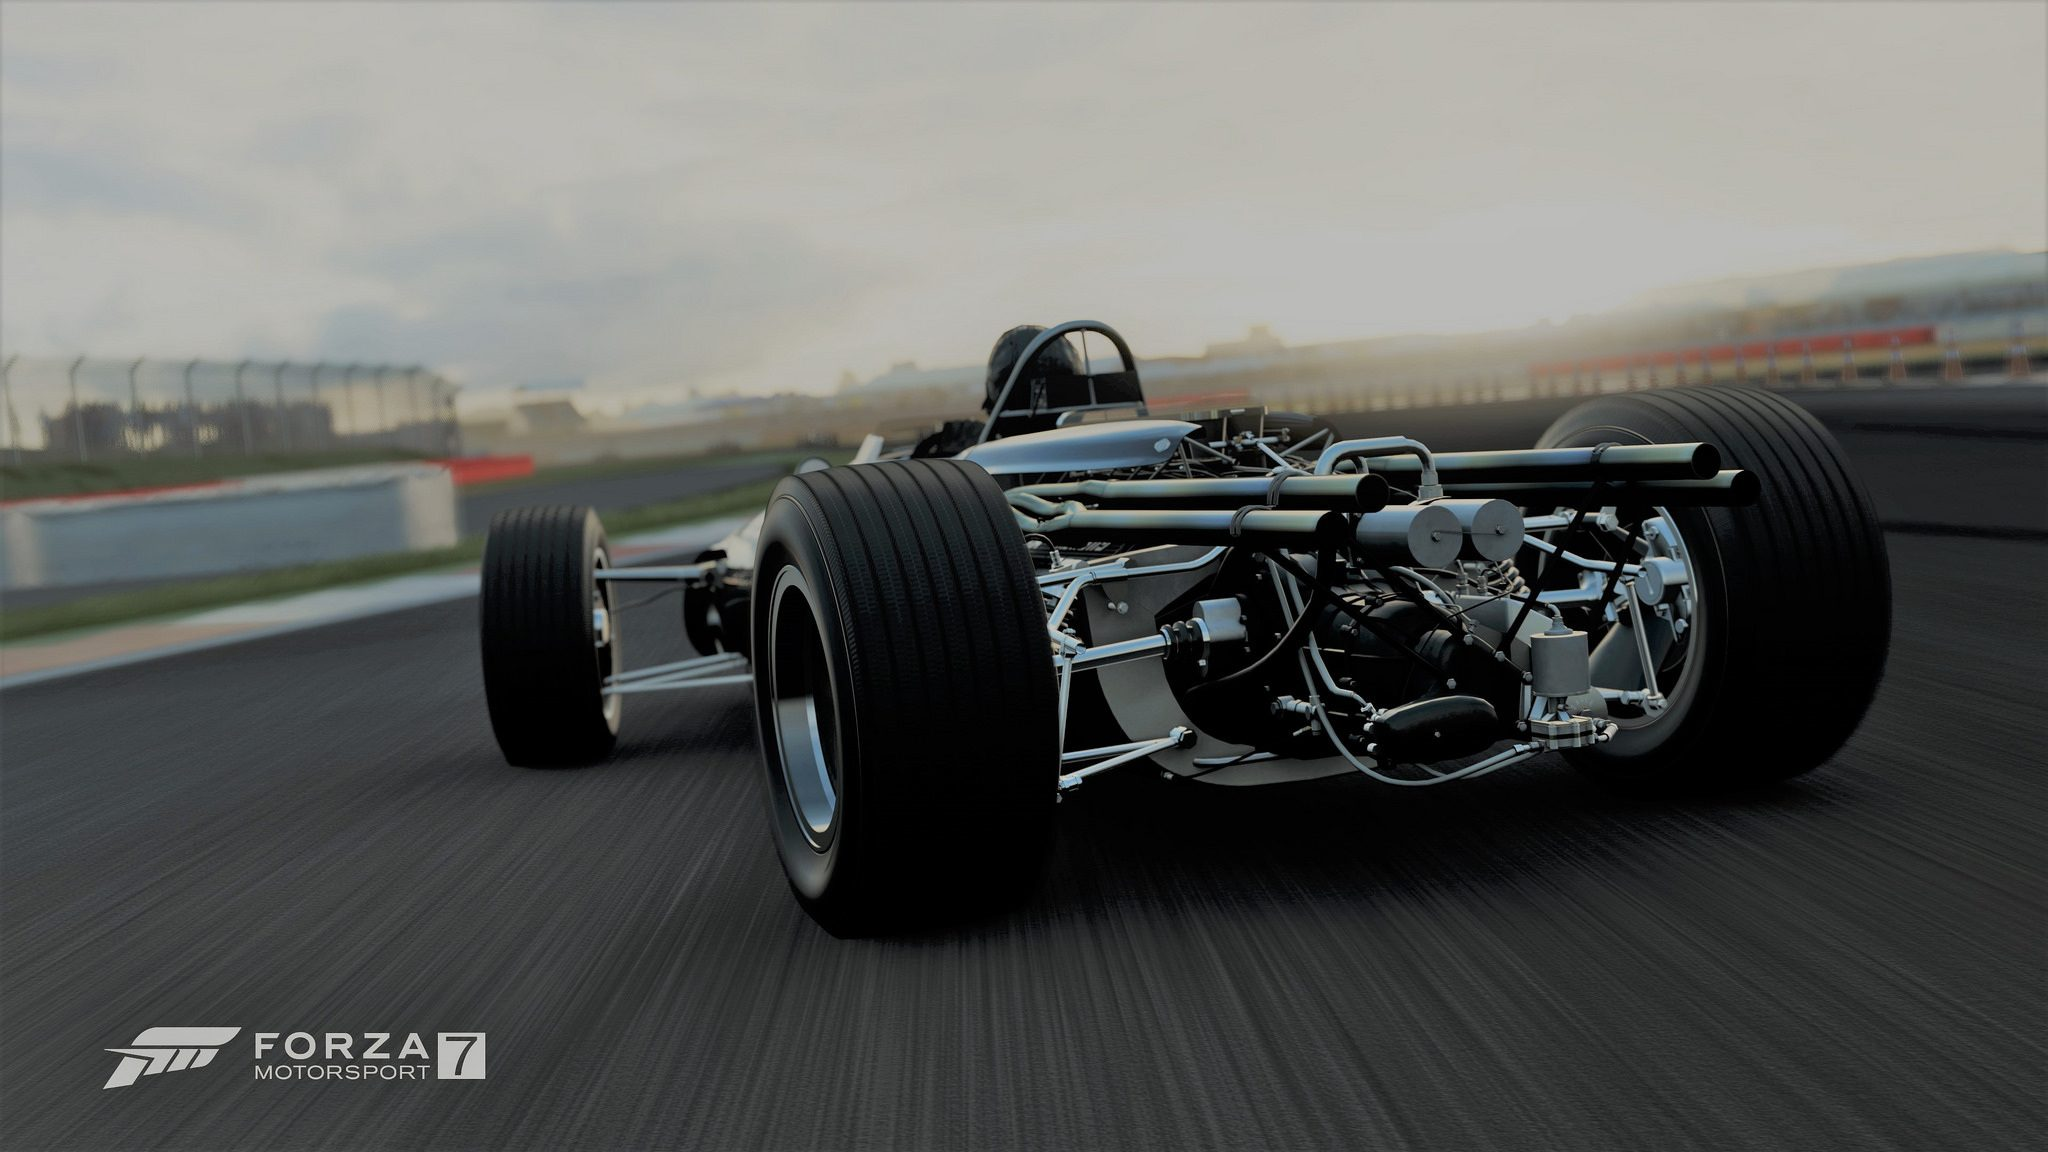 Forza 7's June Update Now Available: Adds UDP Support